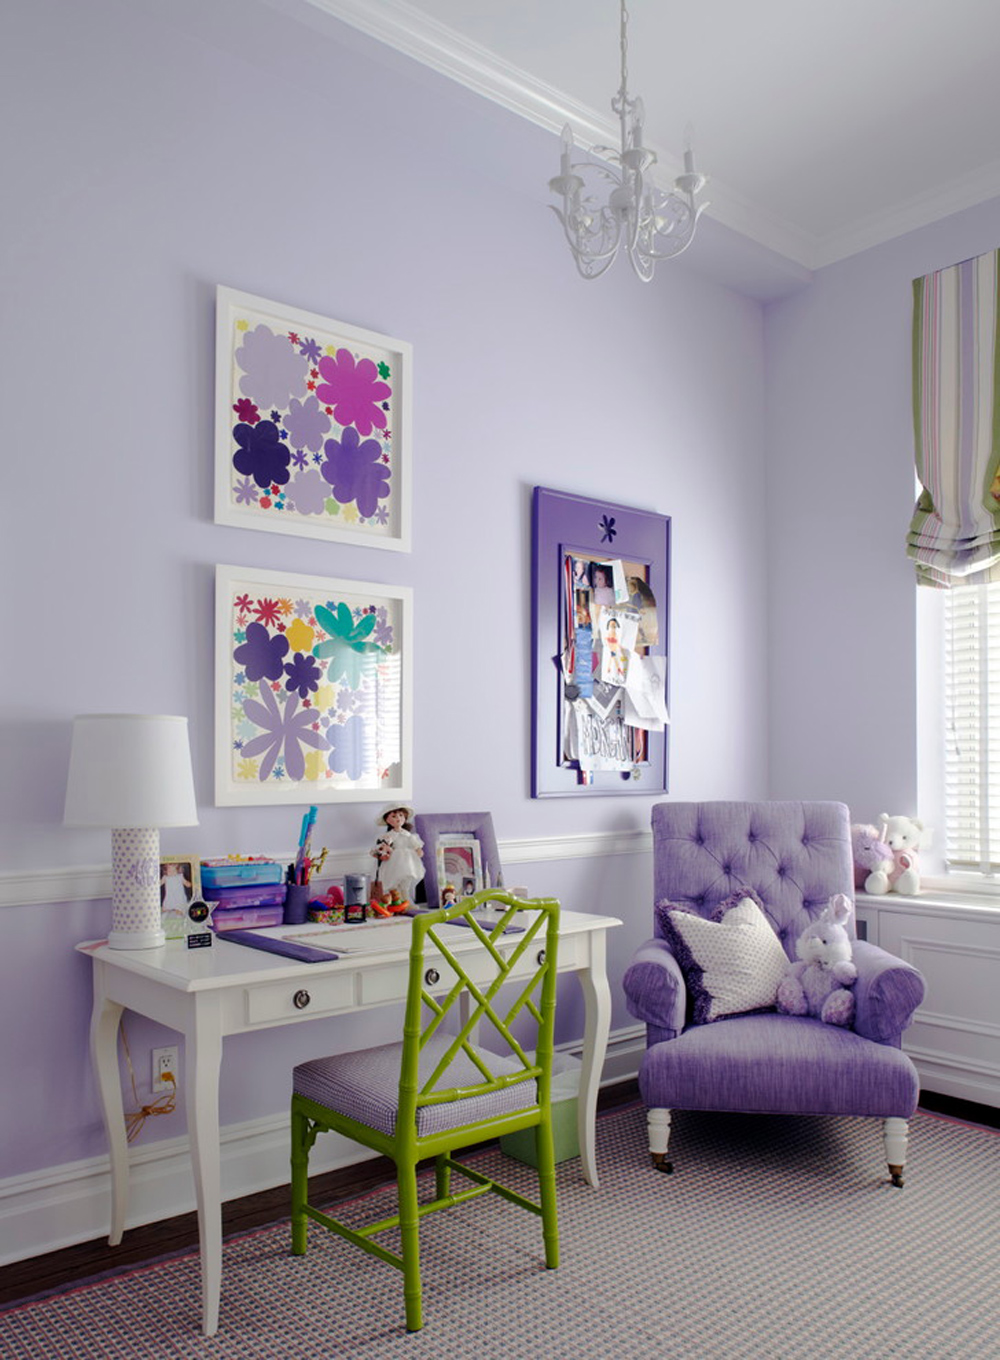 Colors That Go With Purple And How To Decorate With This Color,Narrow Shower Room Narrow Very Small Bathroom Ideas